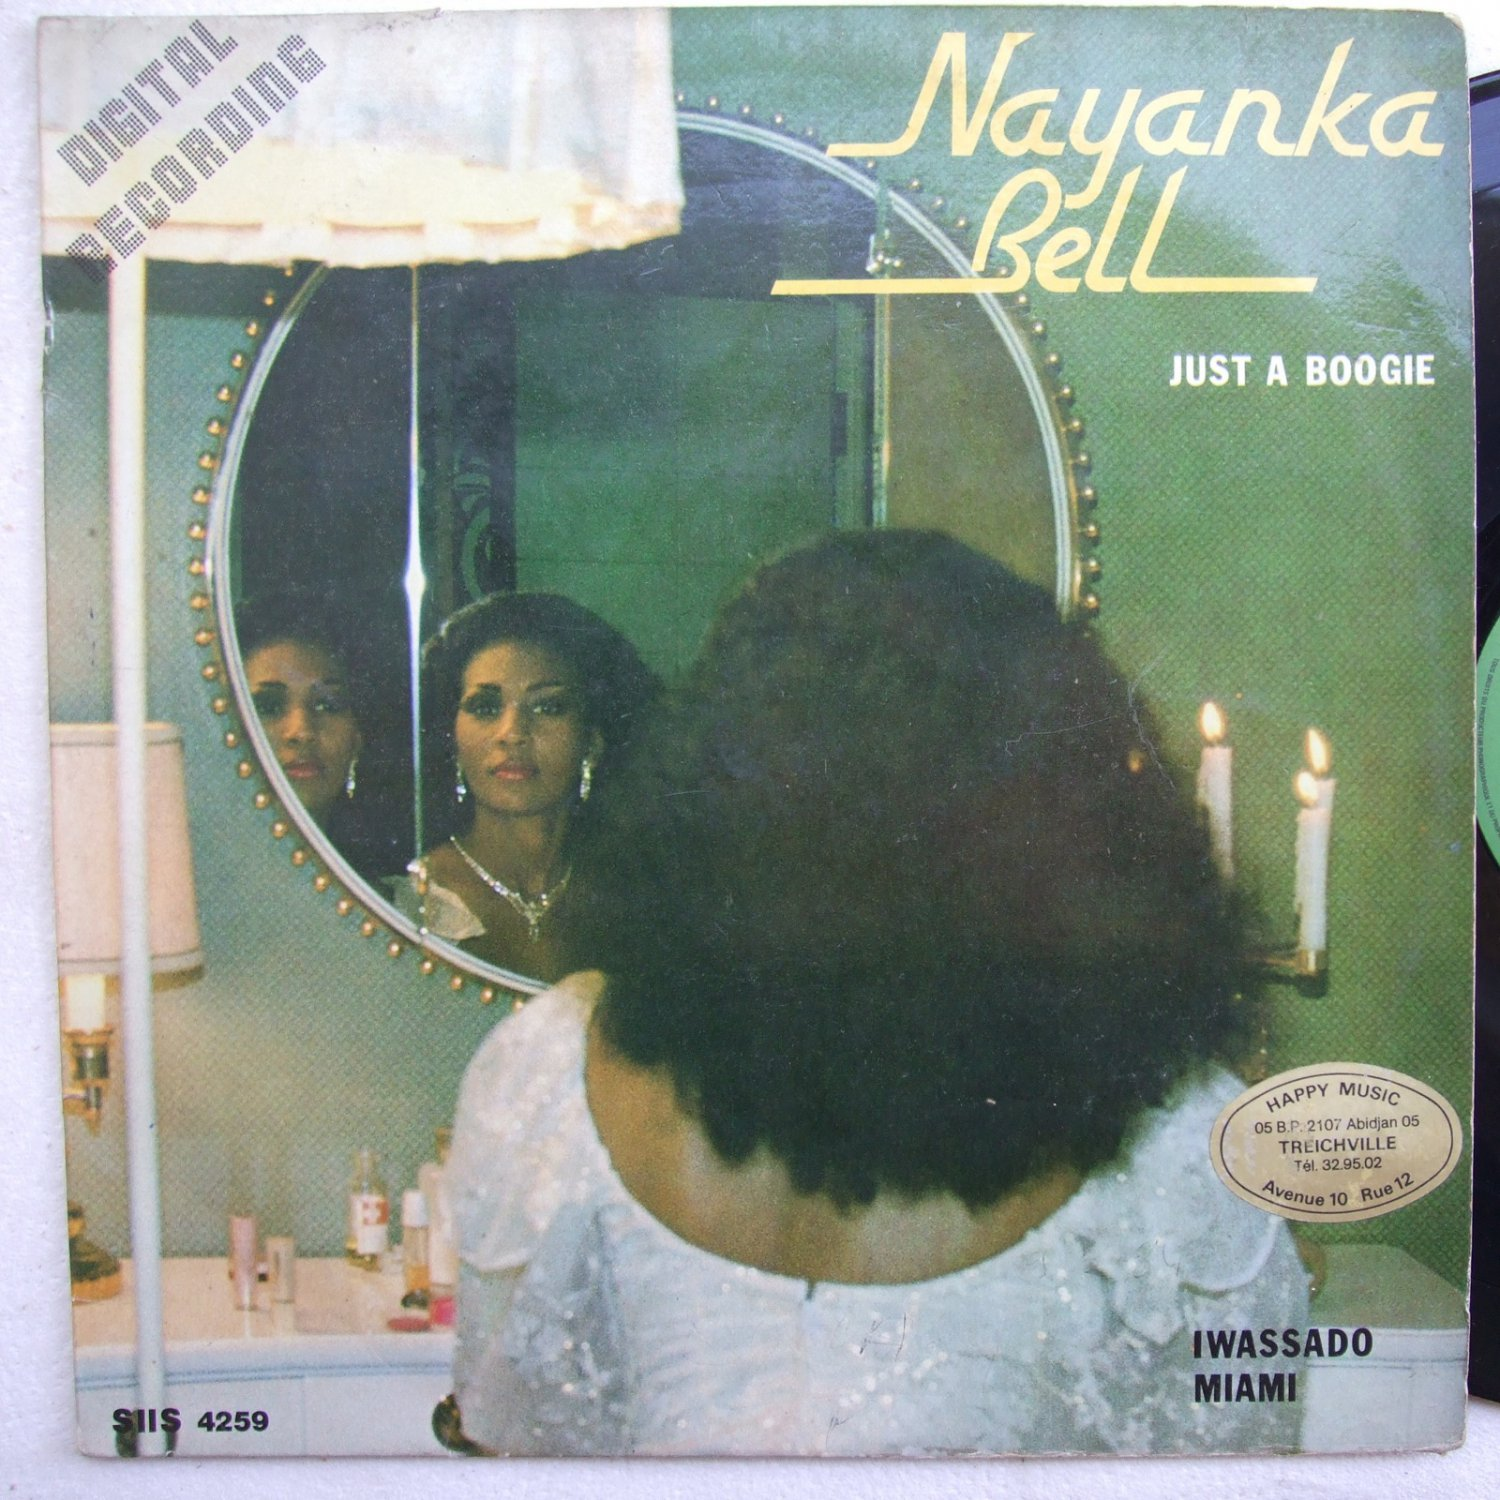 NAYANKA BELL just a boogie JIMMY HYACINTHE GEORGE HAPPI AFRO BOOGIE FUNK MODERN SOUL LP mp3 listen